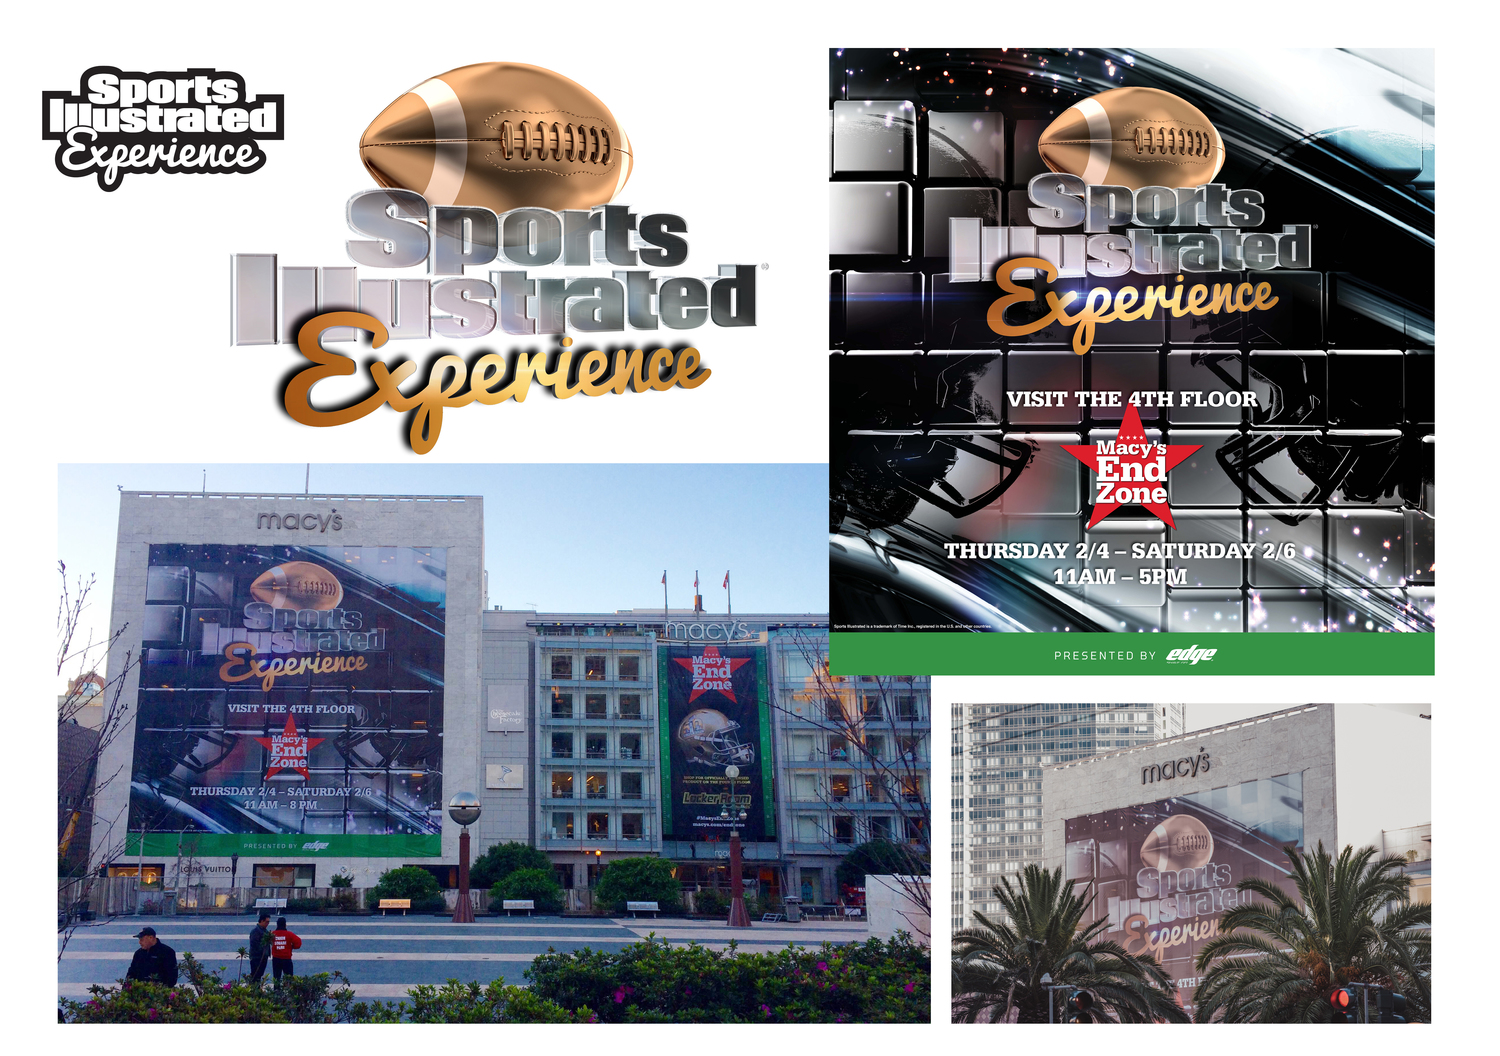 Macys store superbowl event design